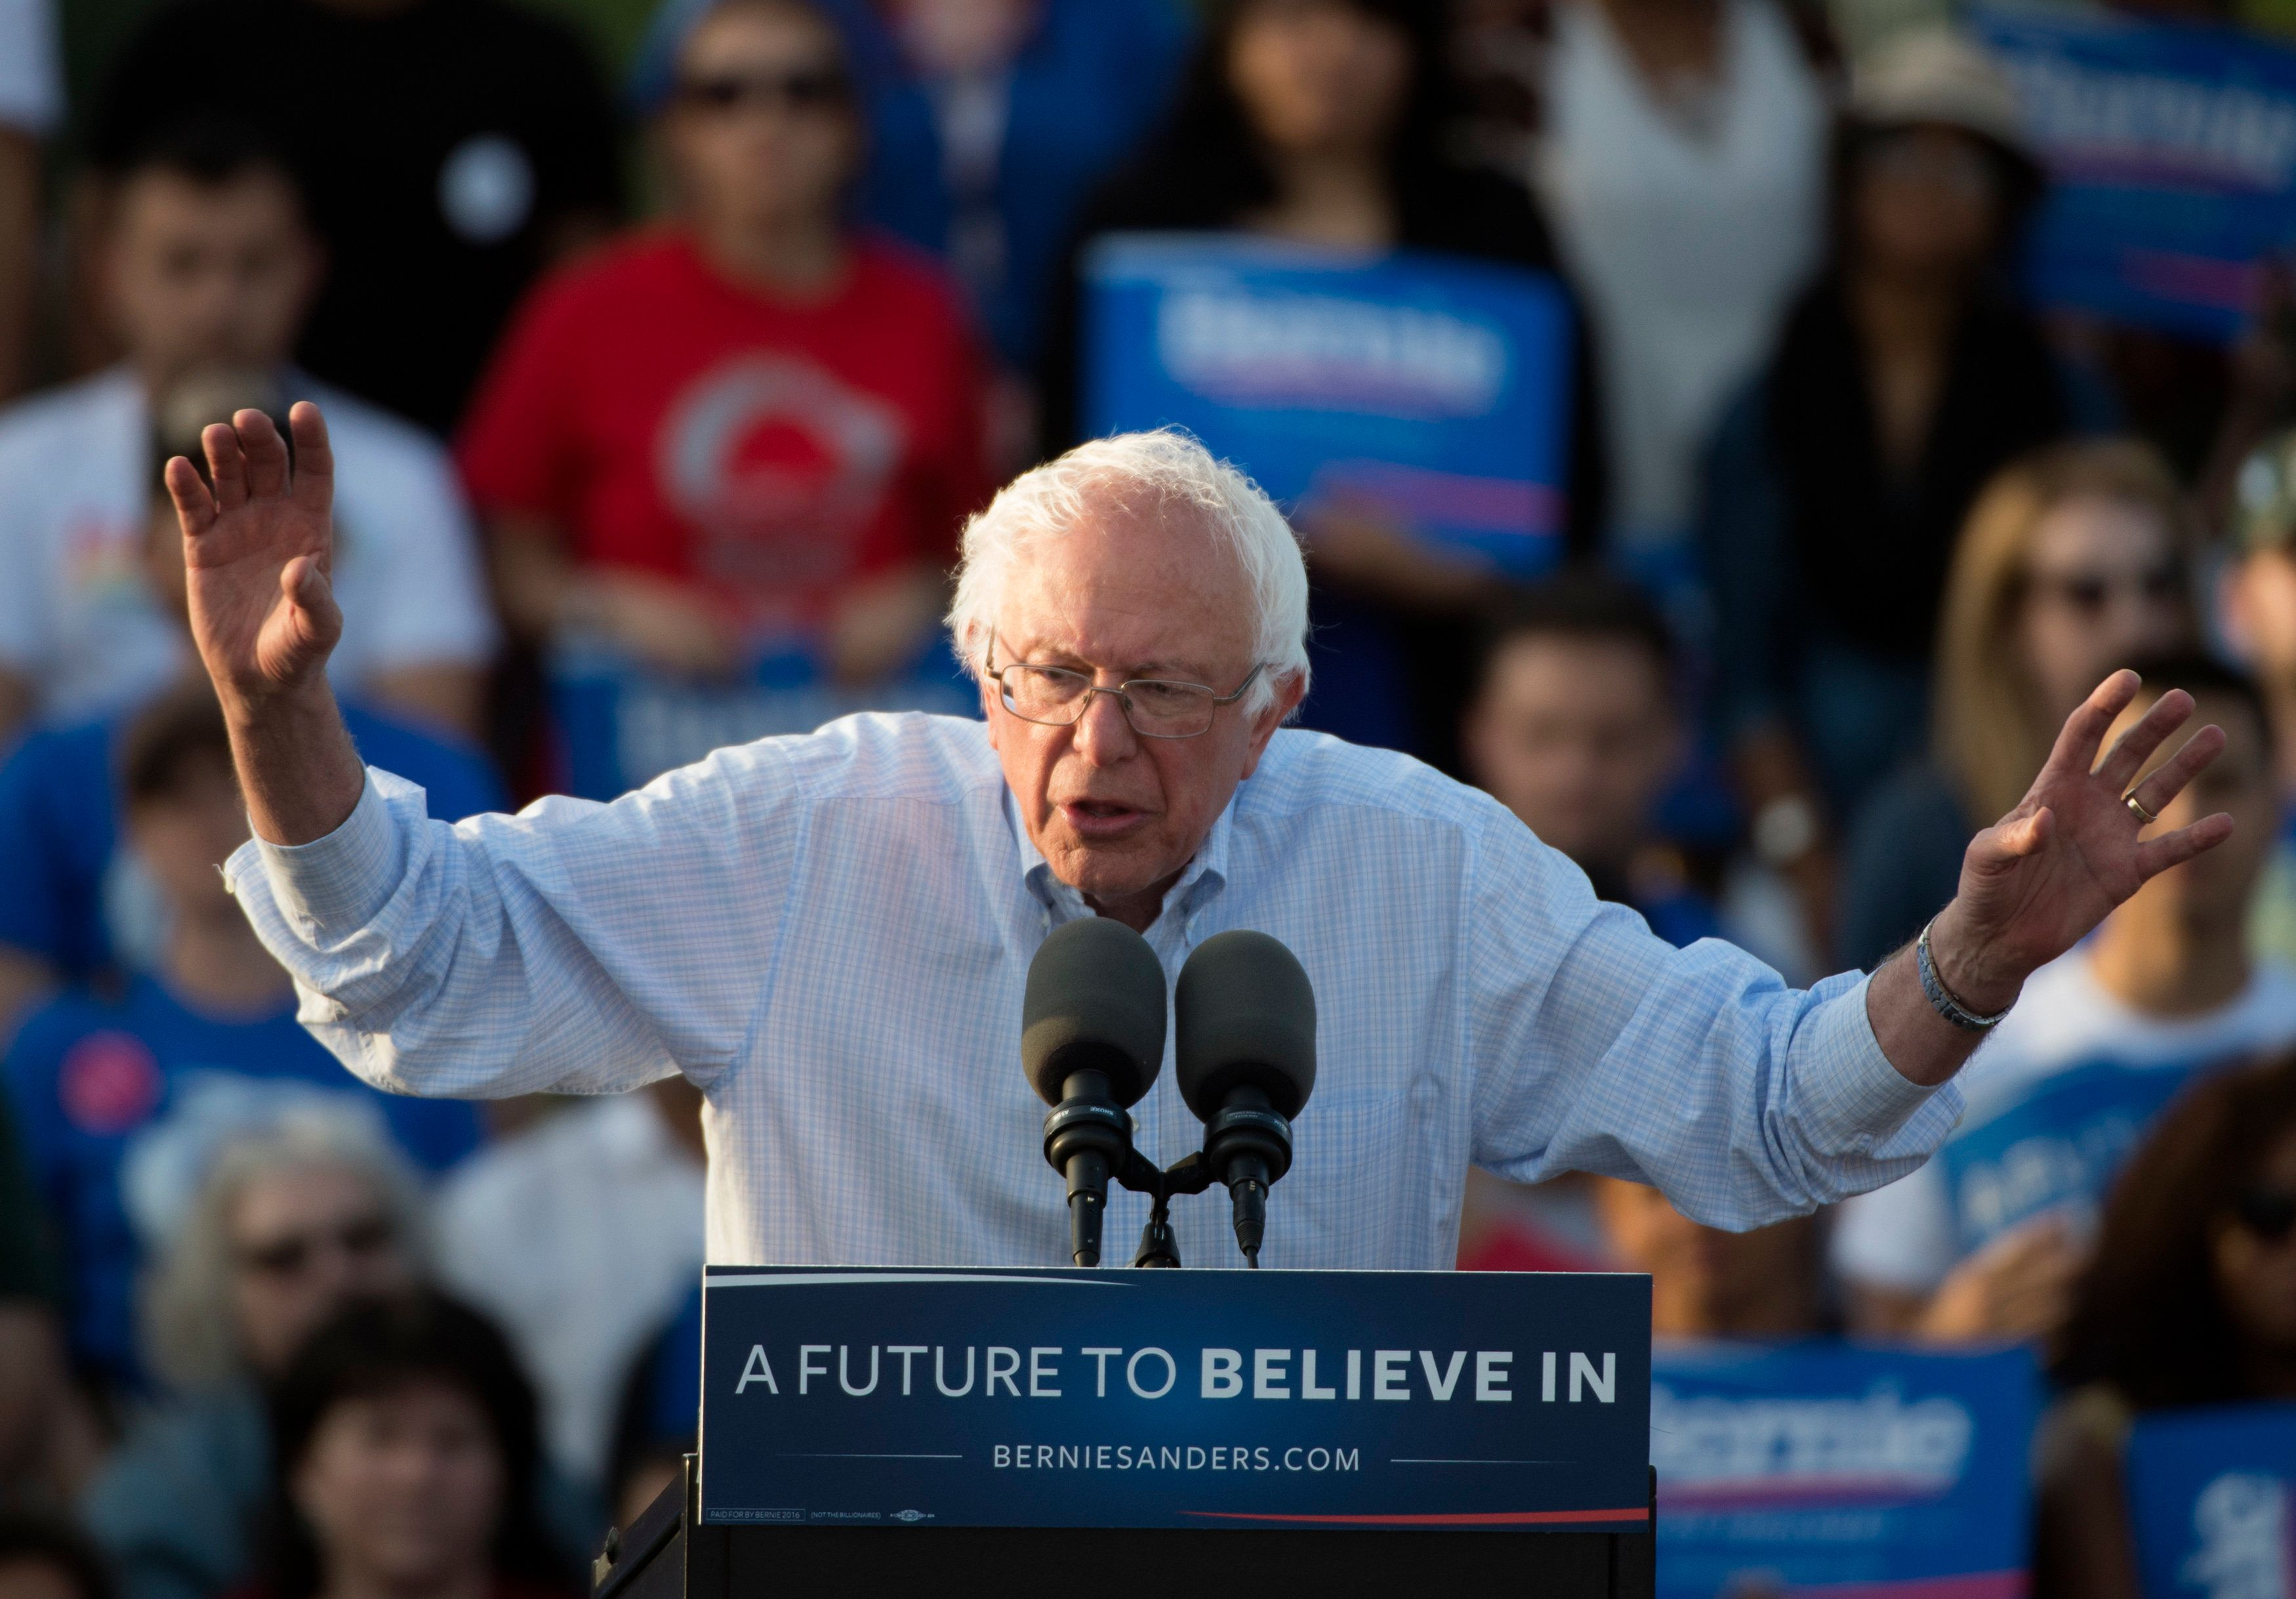 Democratic Presidential Candidate Bernie Sanders speaks during A Future to Believe In rally on June 9, 2016, in Washington, DC.   / AFP / MOLLY RILEY        (Photo credit should read MOLLY RILEY/AFP/Getty Images)